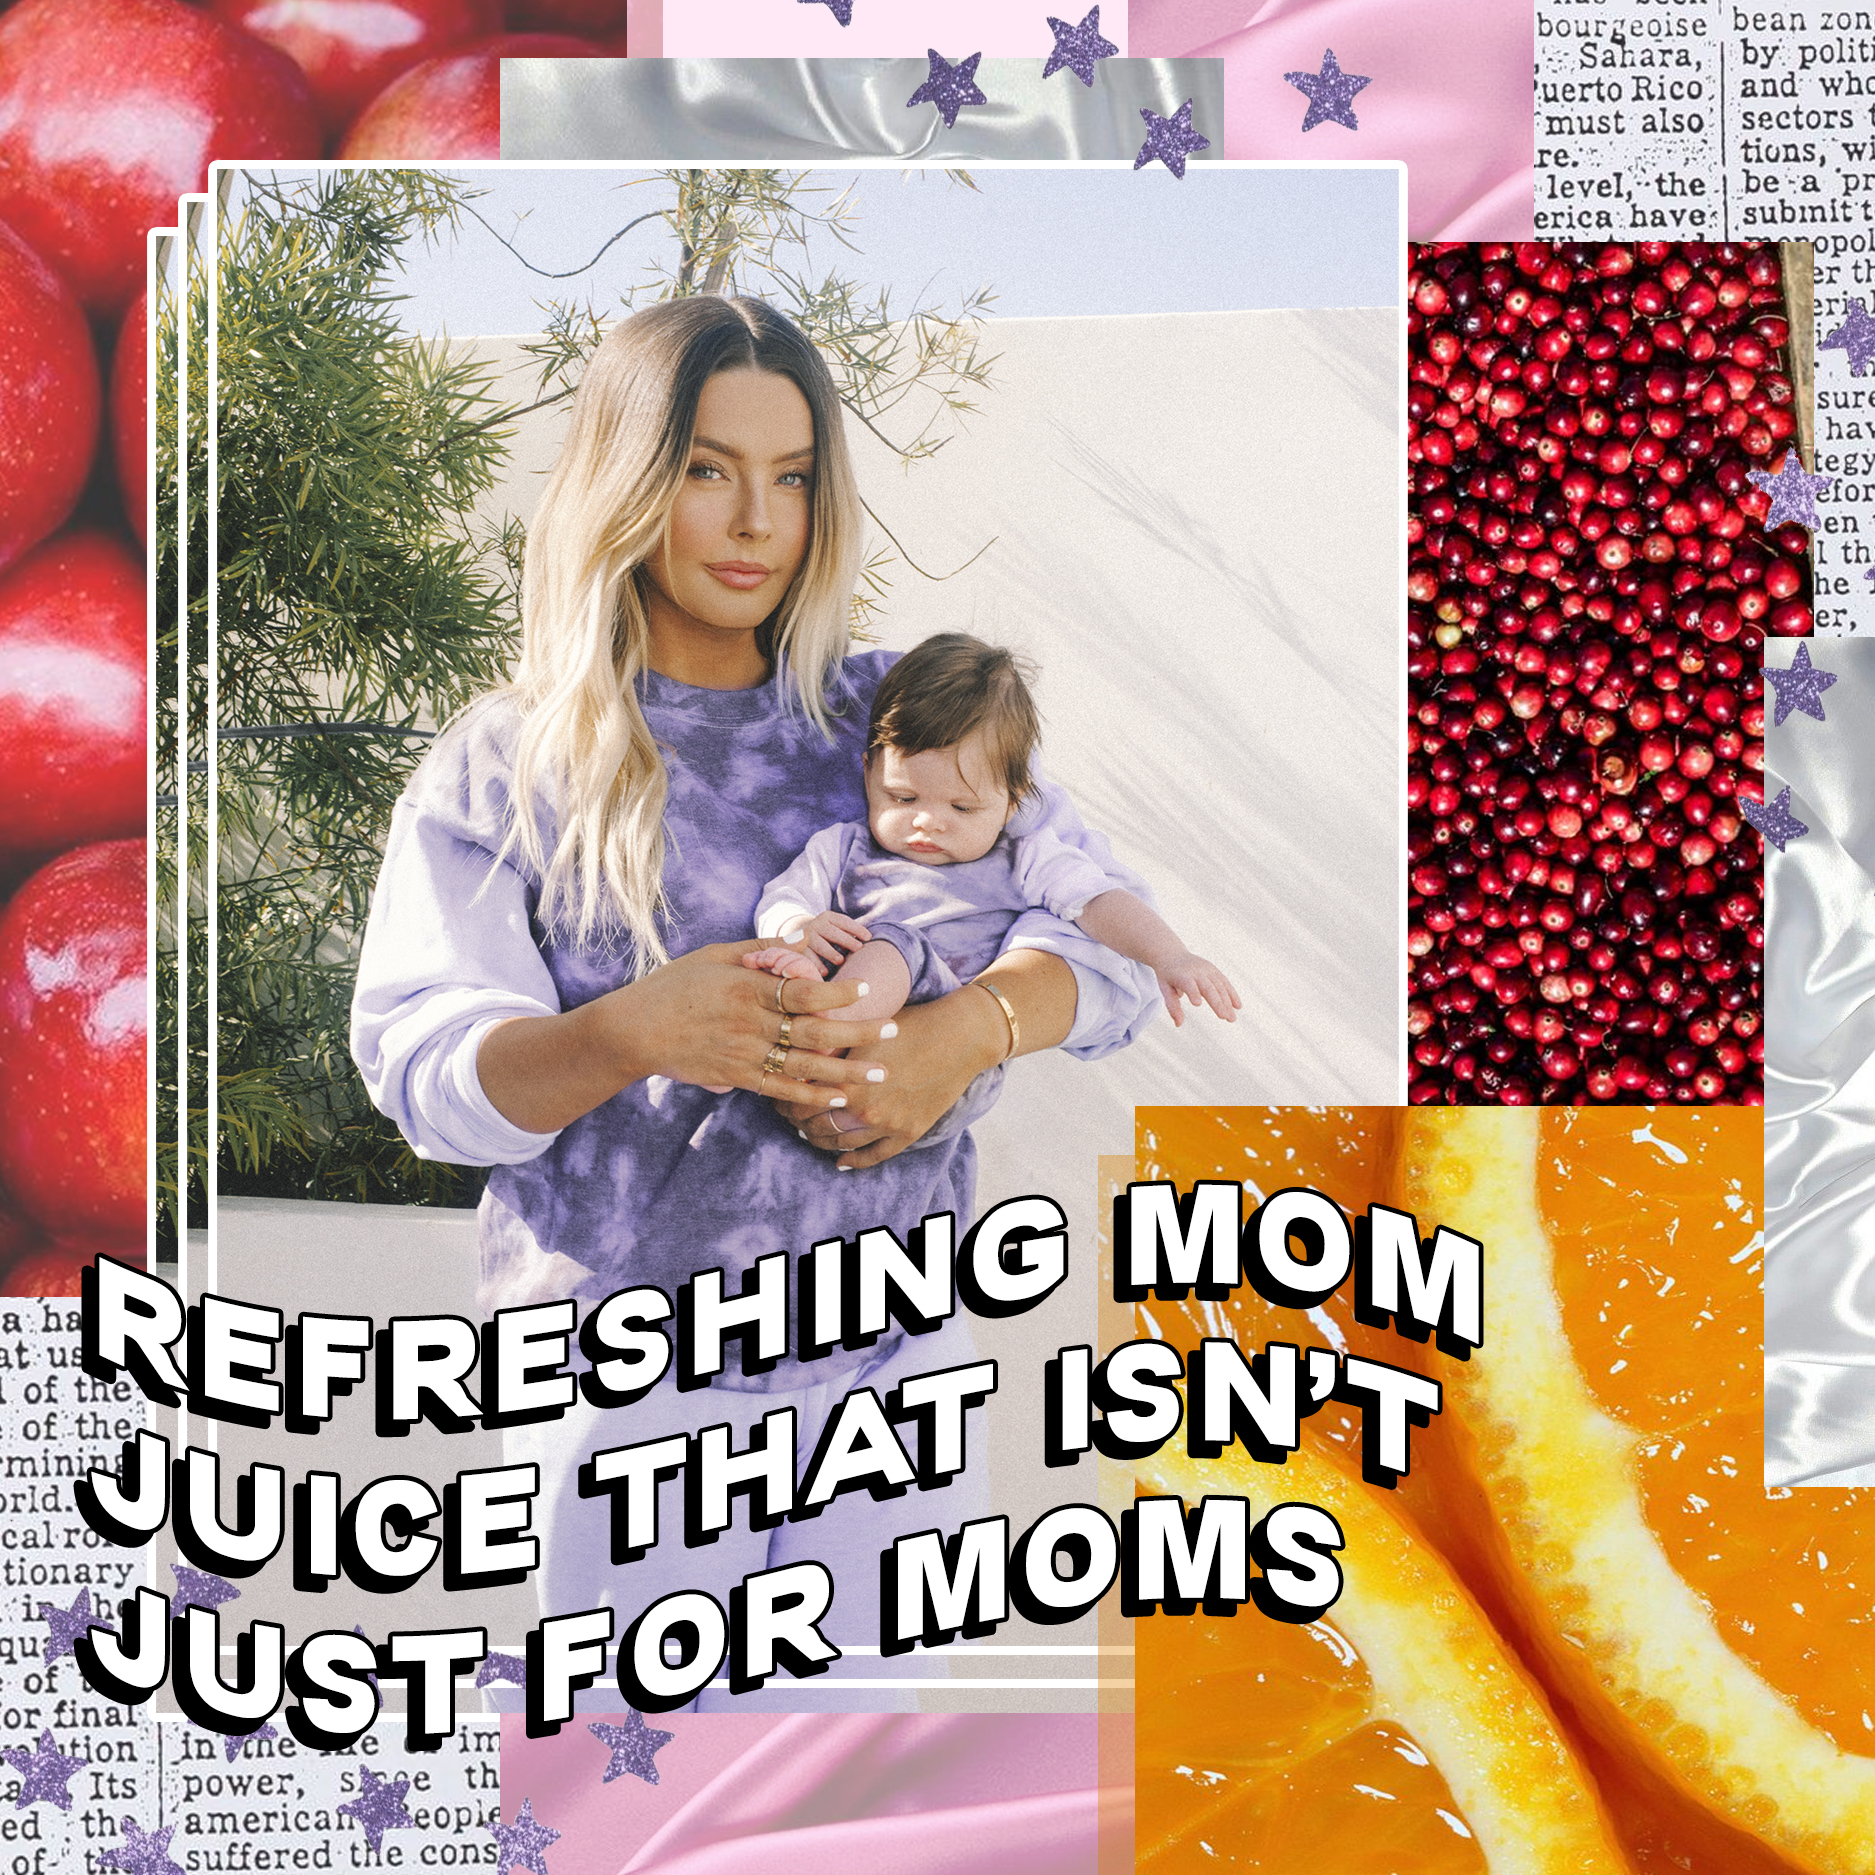 The Mom Juice That's Not Just For Moms